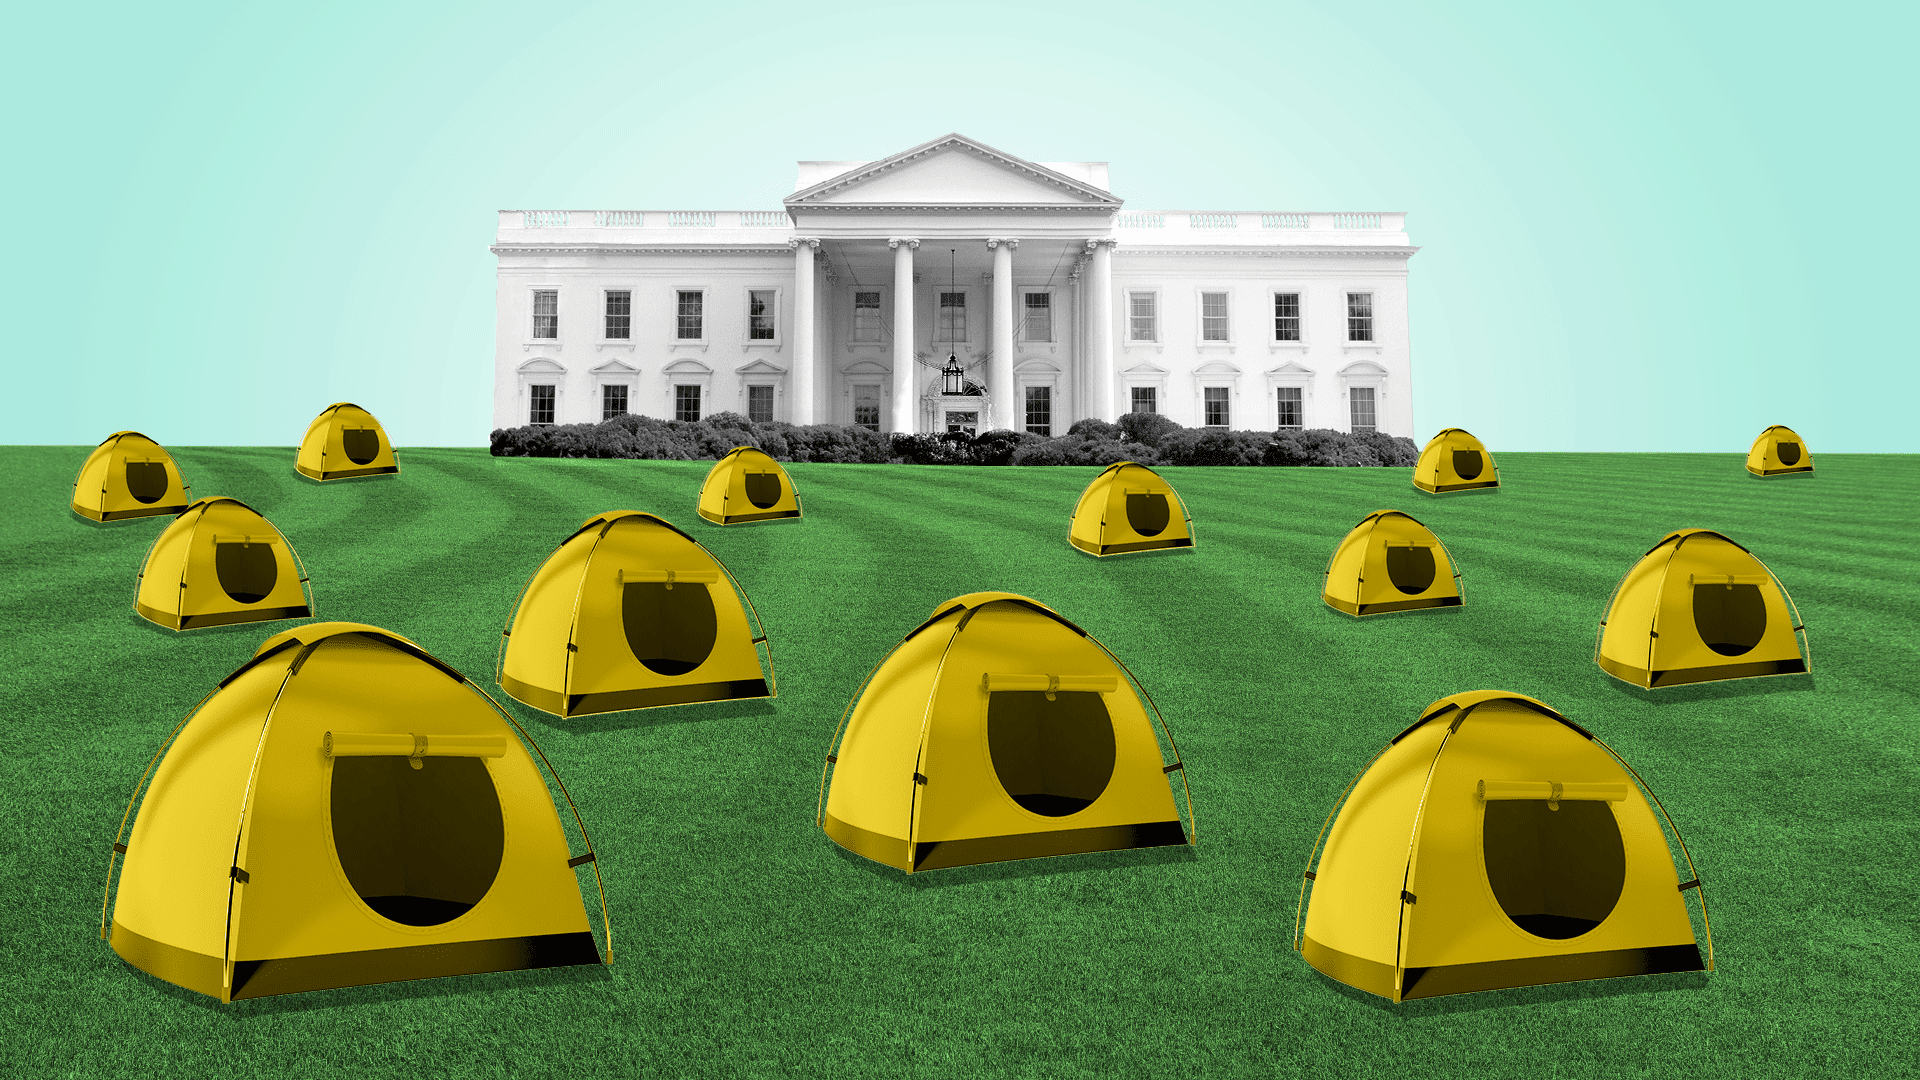 Illustration of White House with tents out front.